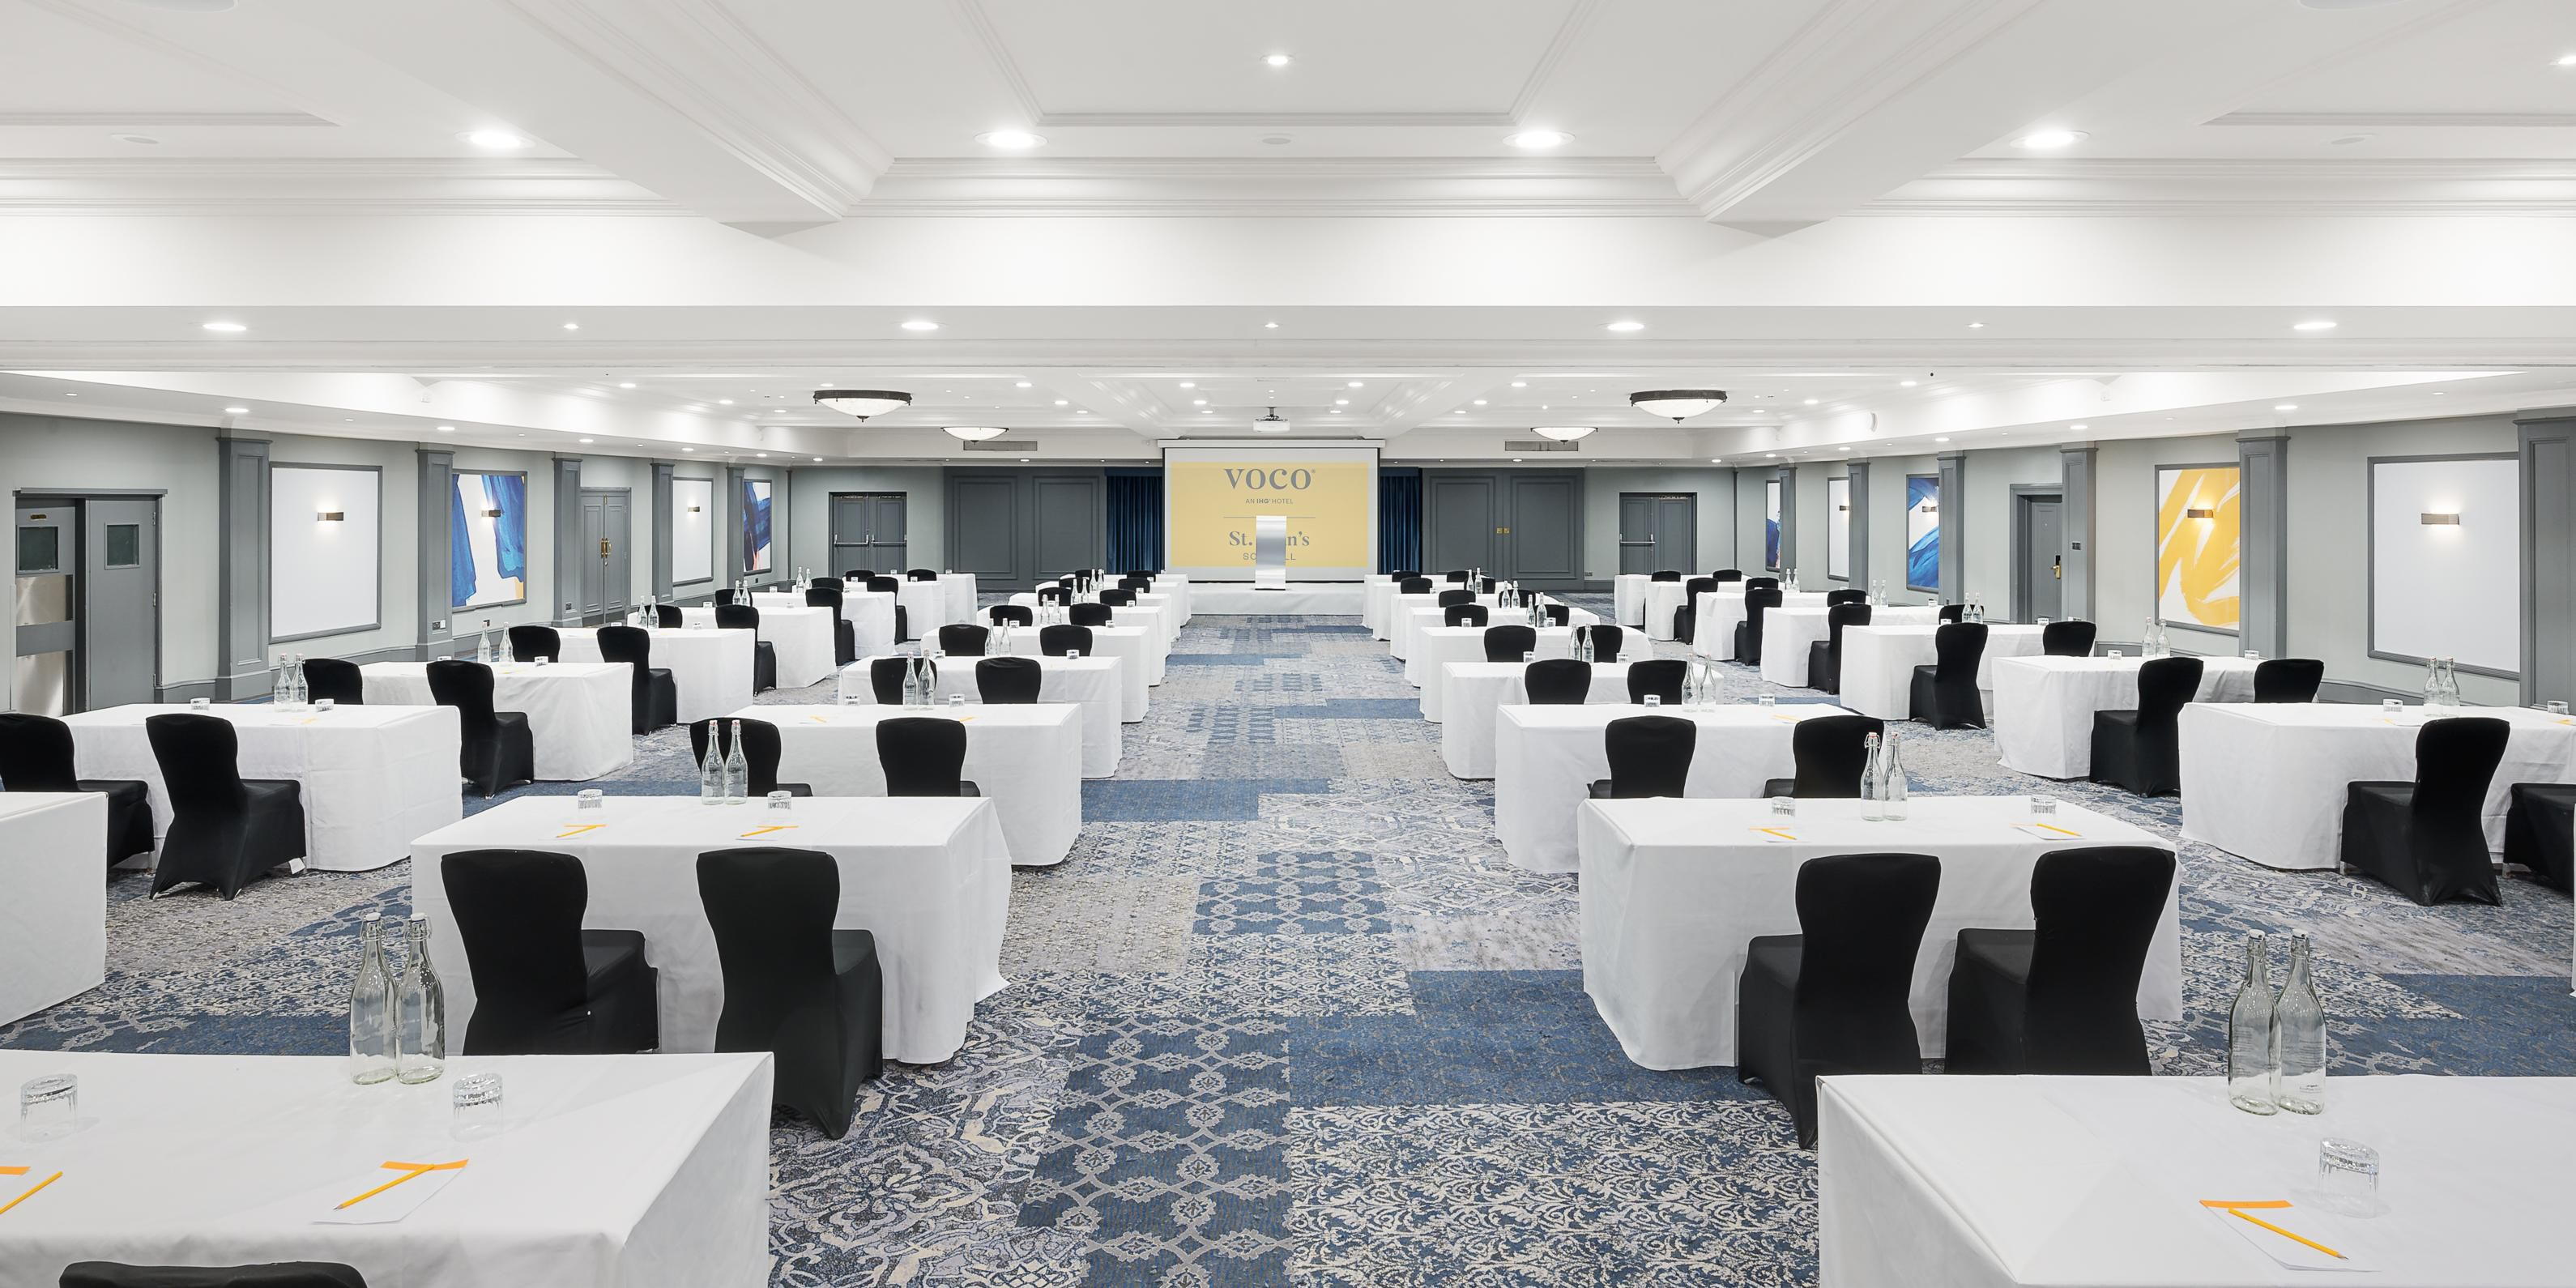 Park Suite is ideal for larger conferences, meetings and events.